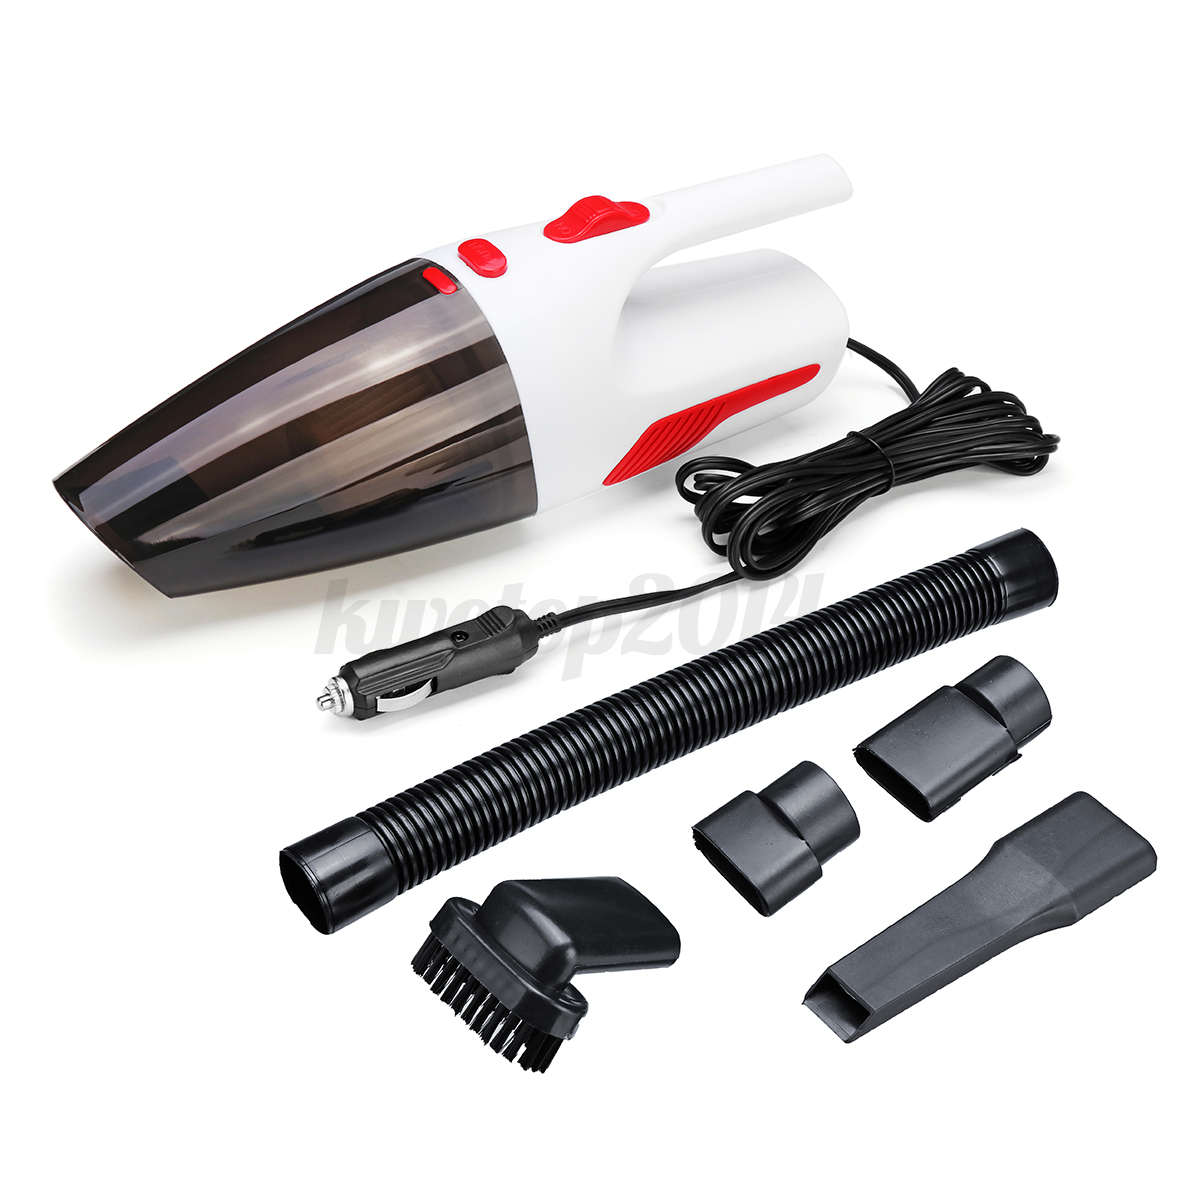 5000Pa-Car-Vacuum-Cleaner-120W-Strong-Suction-Portable-Handheld-Vacuum-Cleaner thumbnail 13